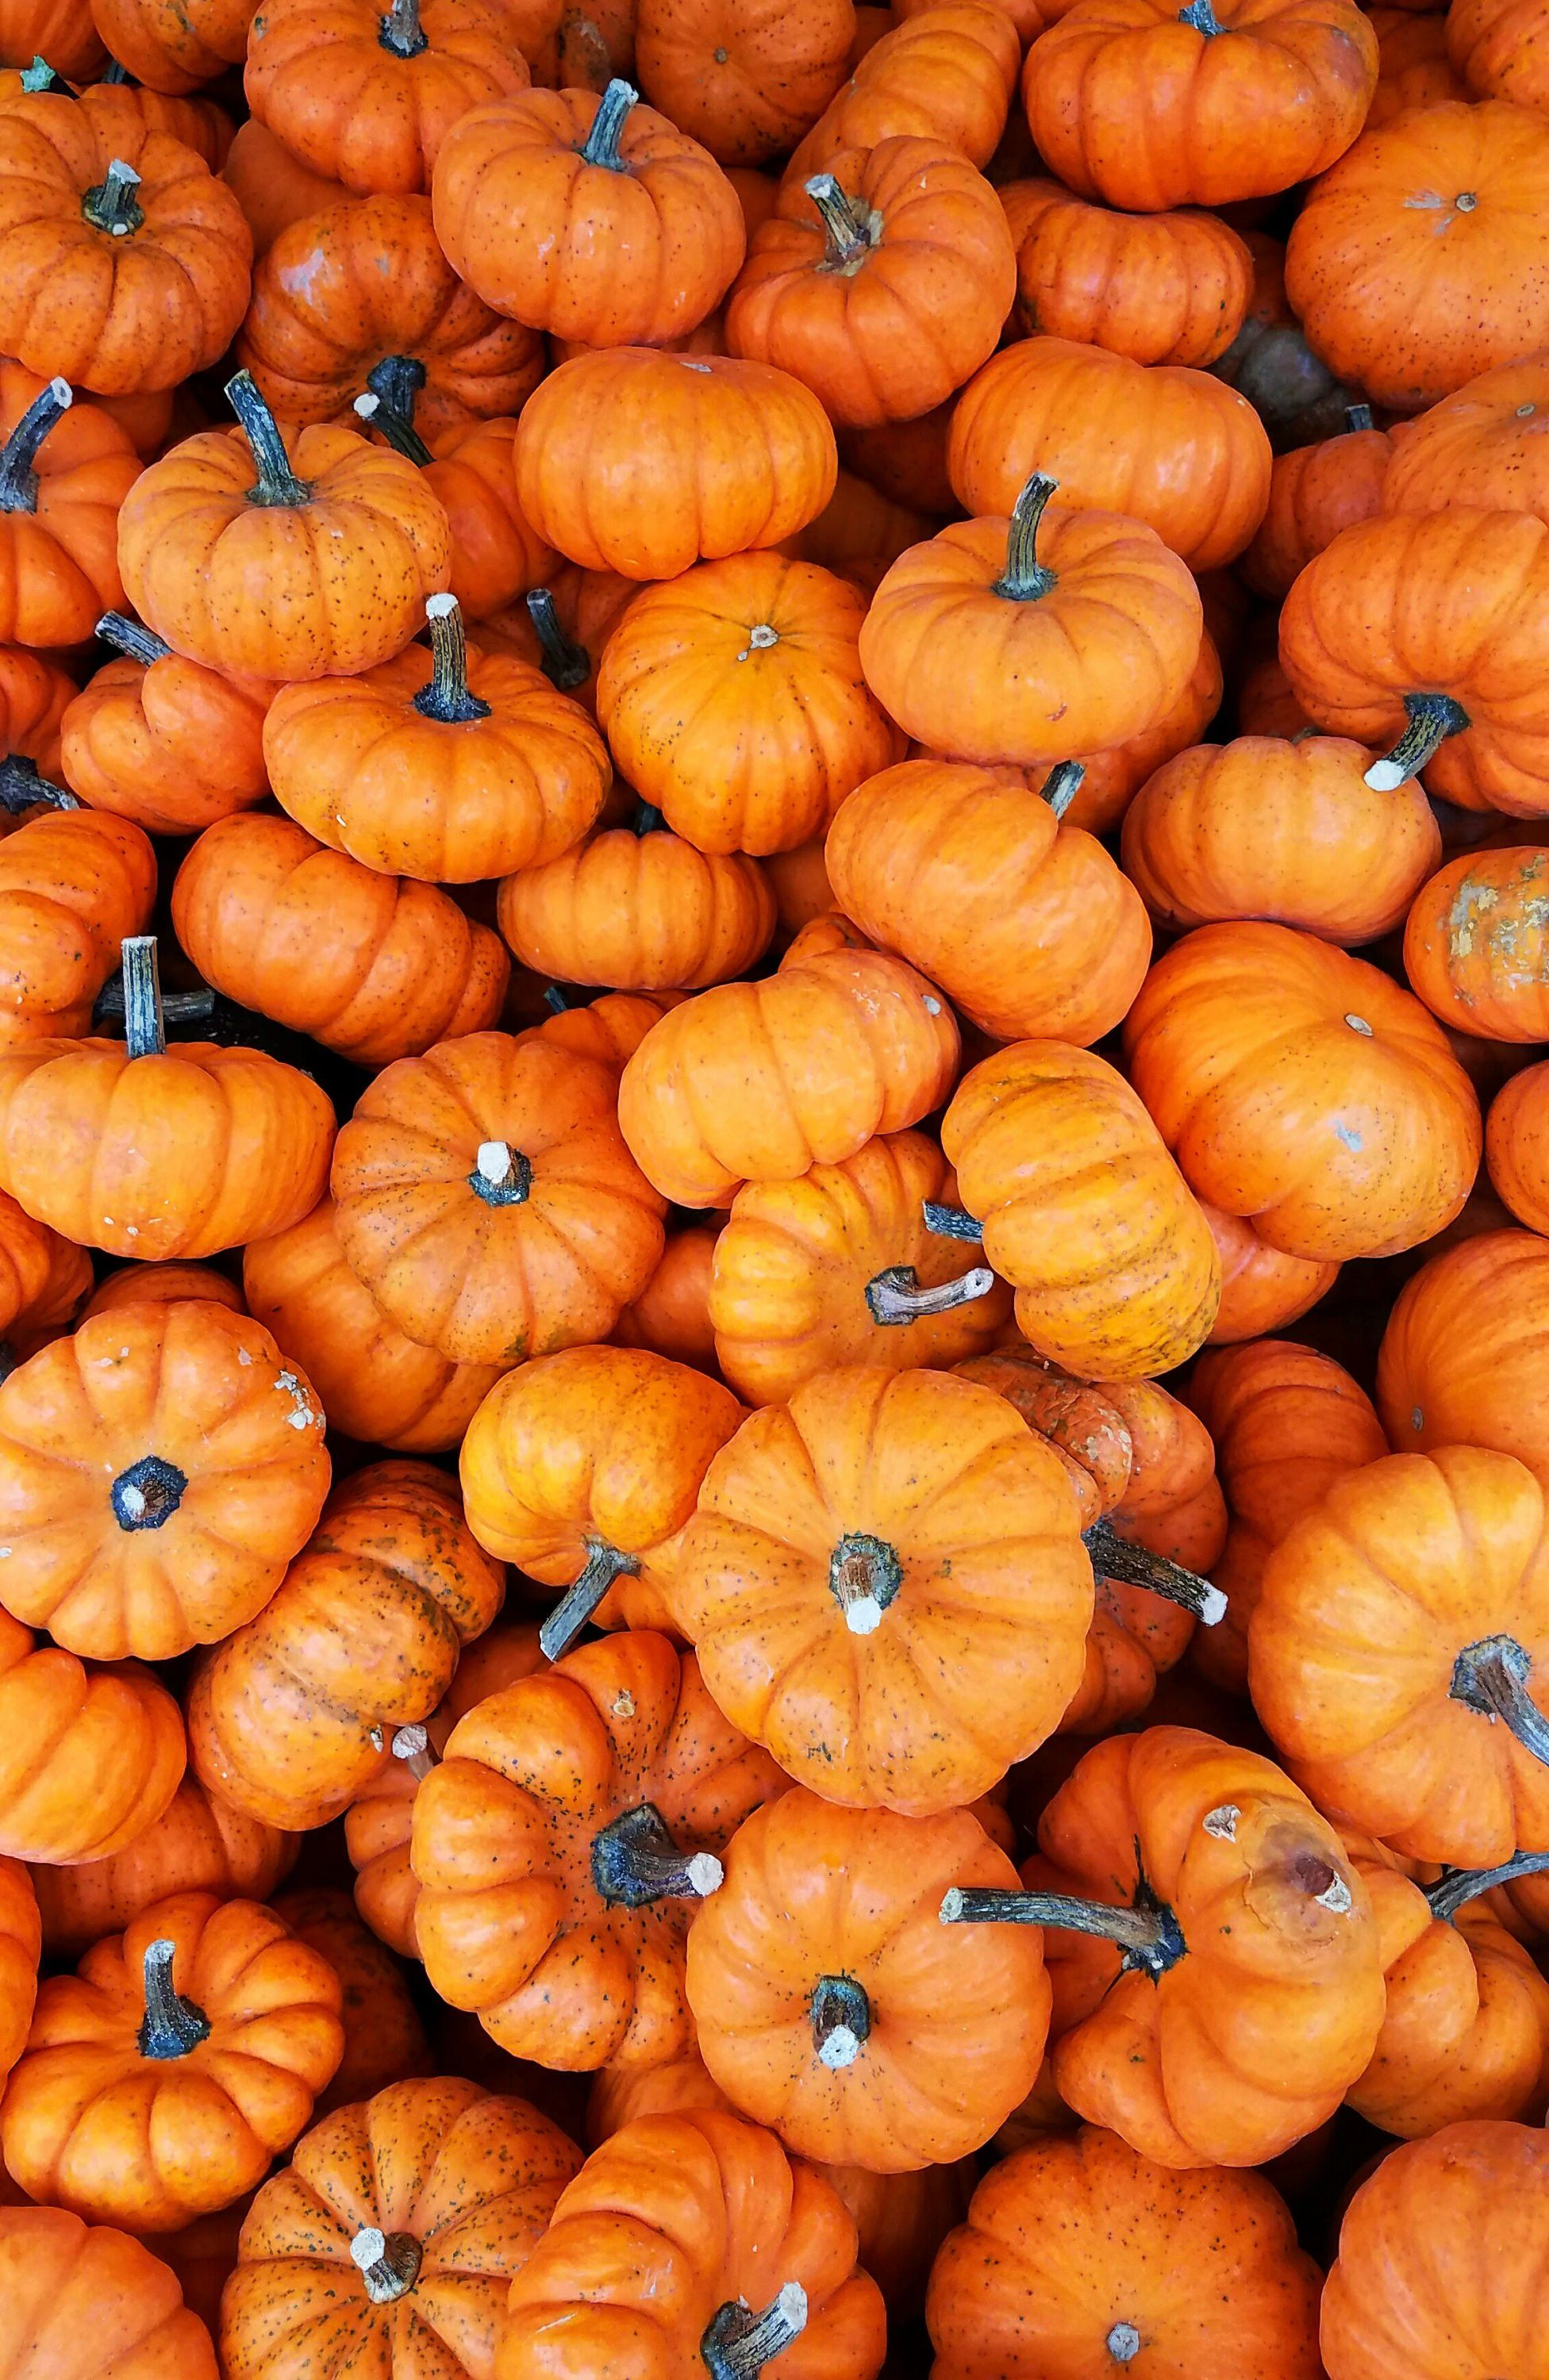 5 Stock Photo Images of Pumpkins and Gourds with Vibrant Color Variations #autumncolours